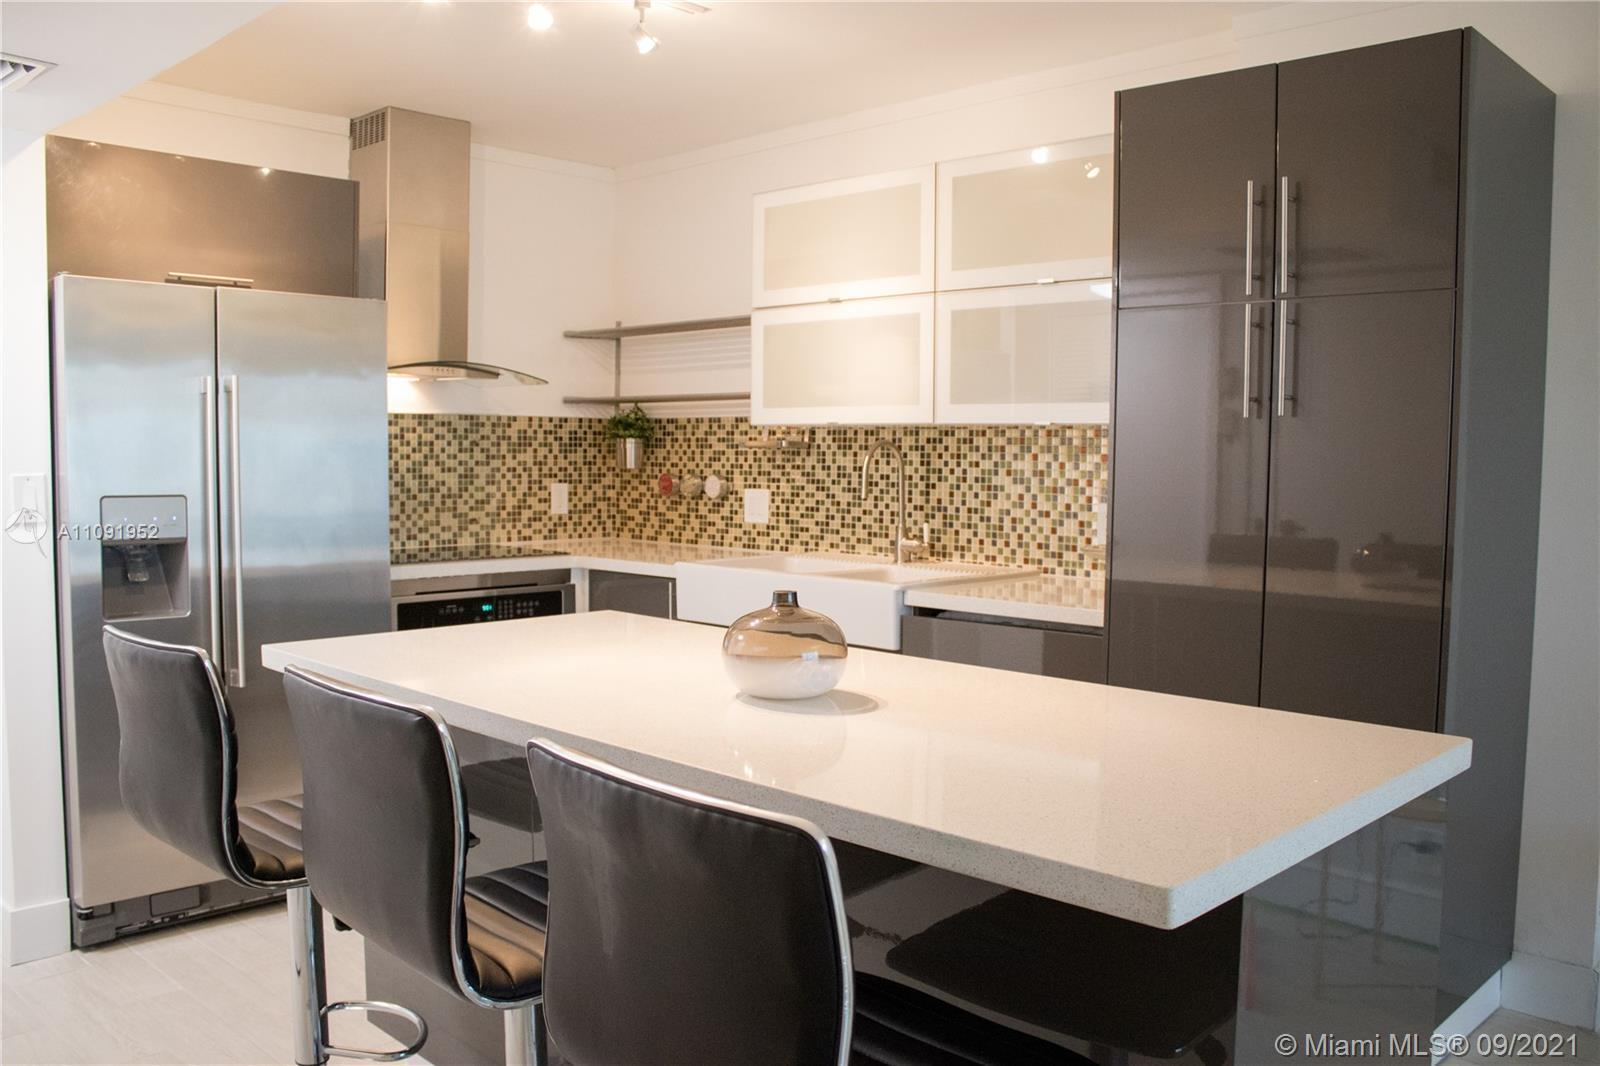 Totally remodeled 1Bed + 1.5Bath Apartment with beautiful views to Turnberry Golf Course and ocean.